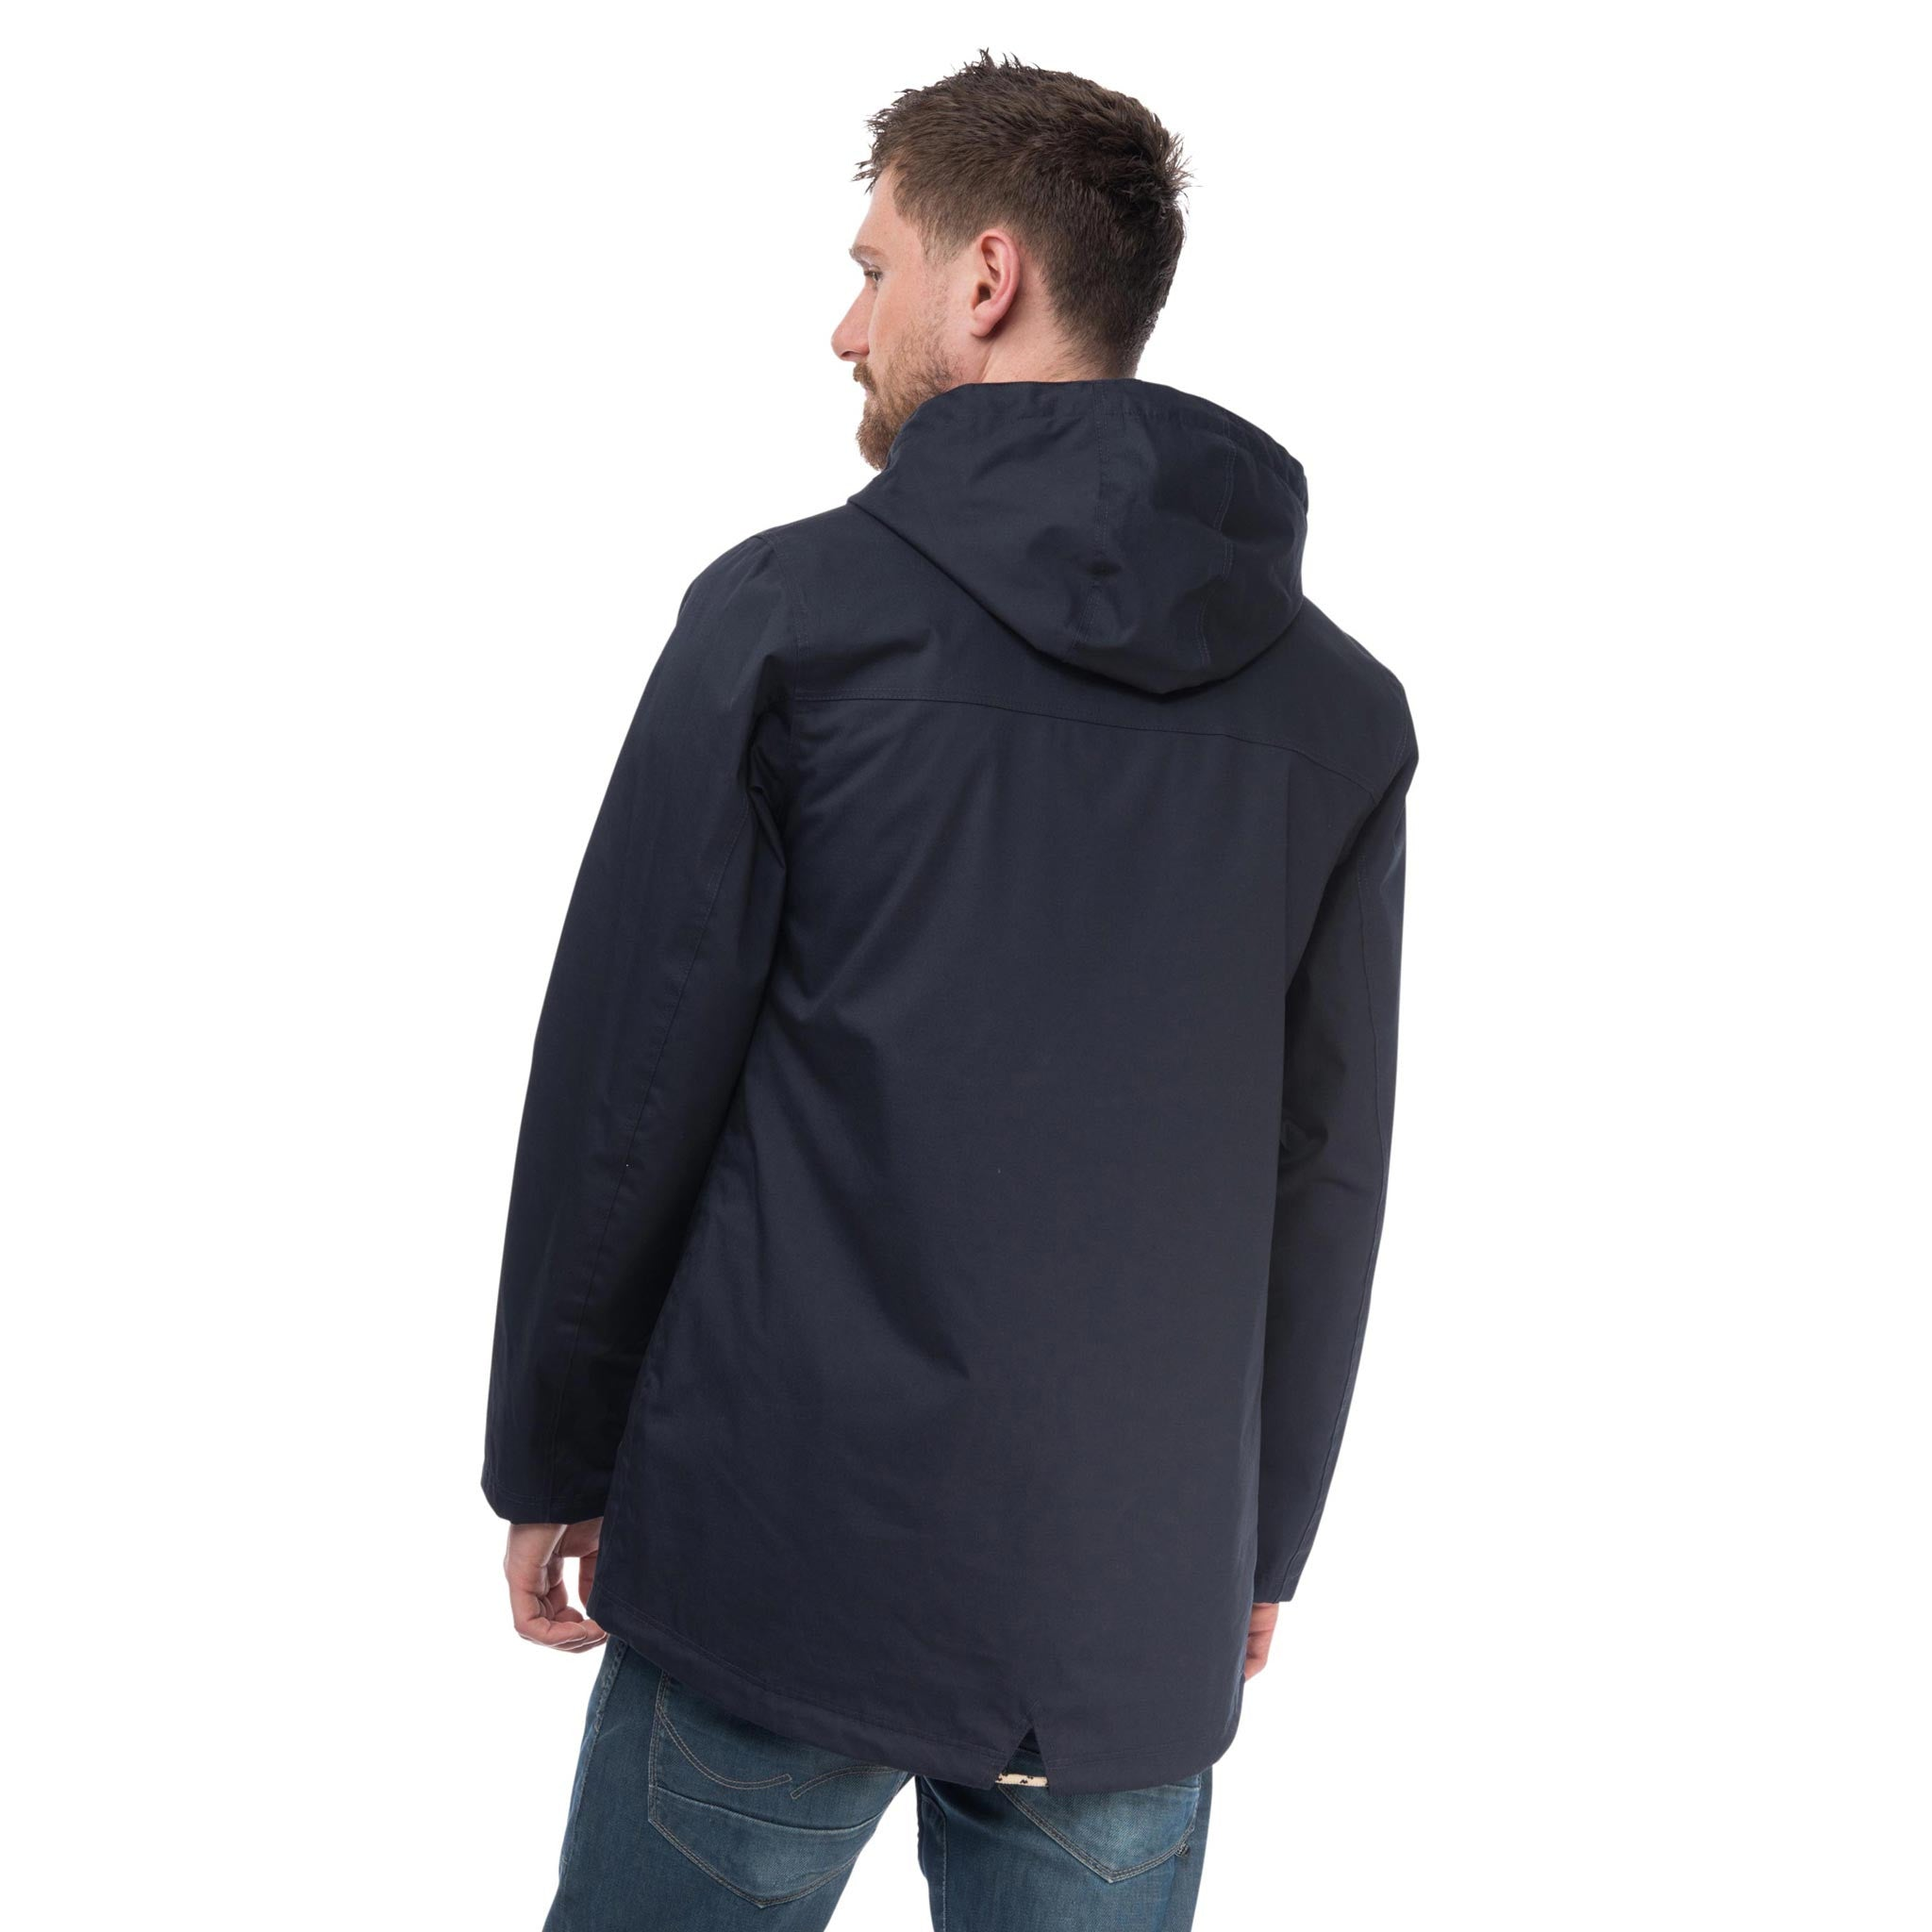 Navigator Mens Waterproof Parka with Cotton Outer, in Ink Navy, Modelled Back View | Lighthouse